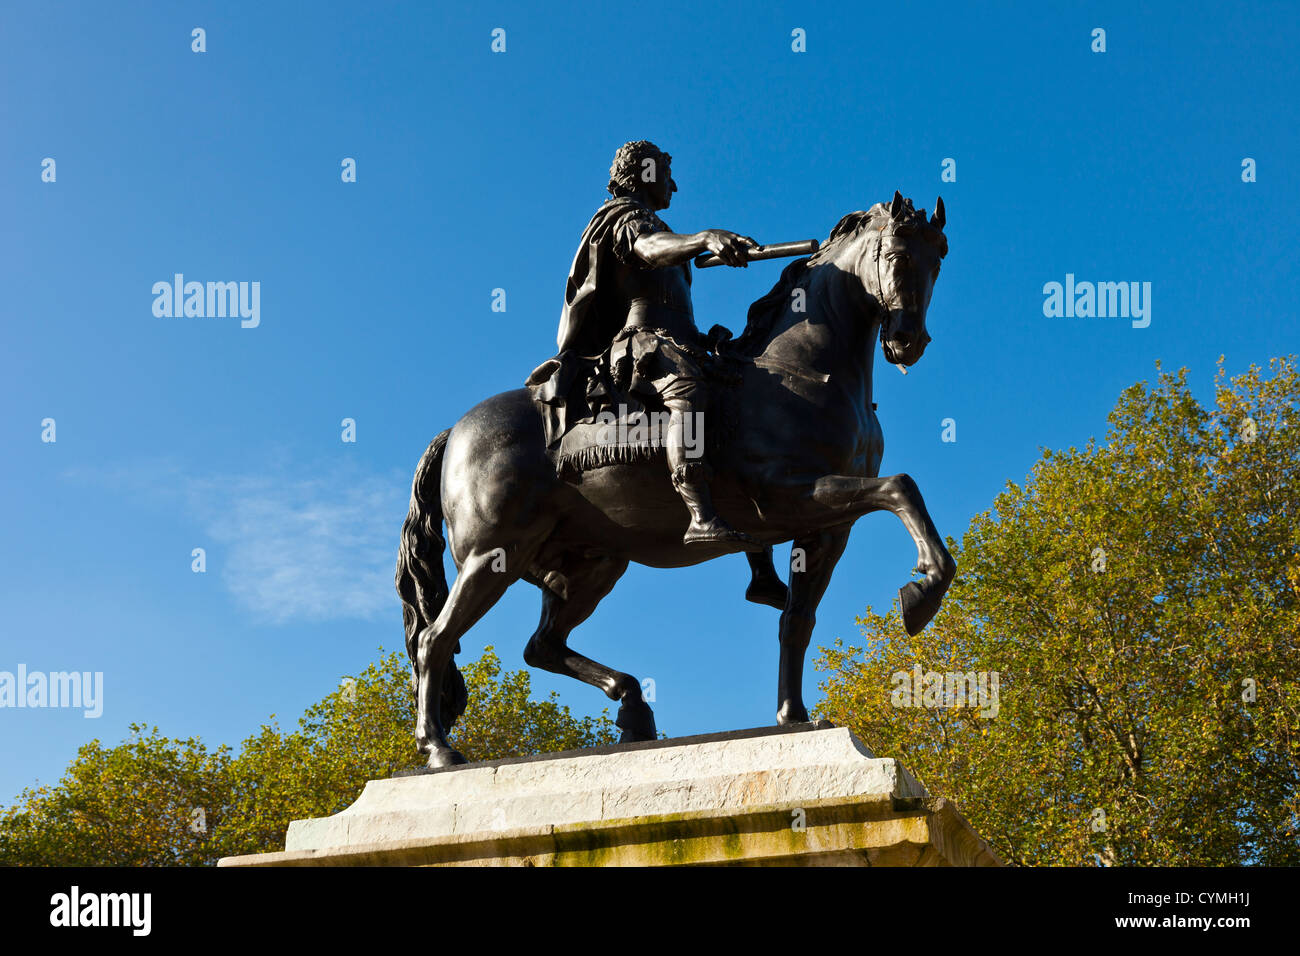 Bronze statue of William III by Rysbach erected in 1736 in Queens Square, Bristol, England, UK. - Stock Image